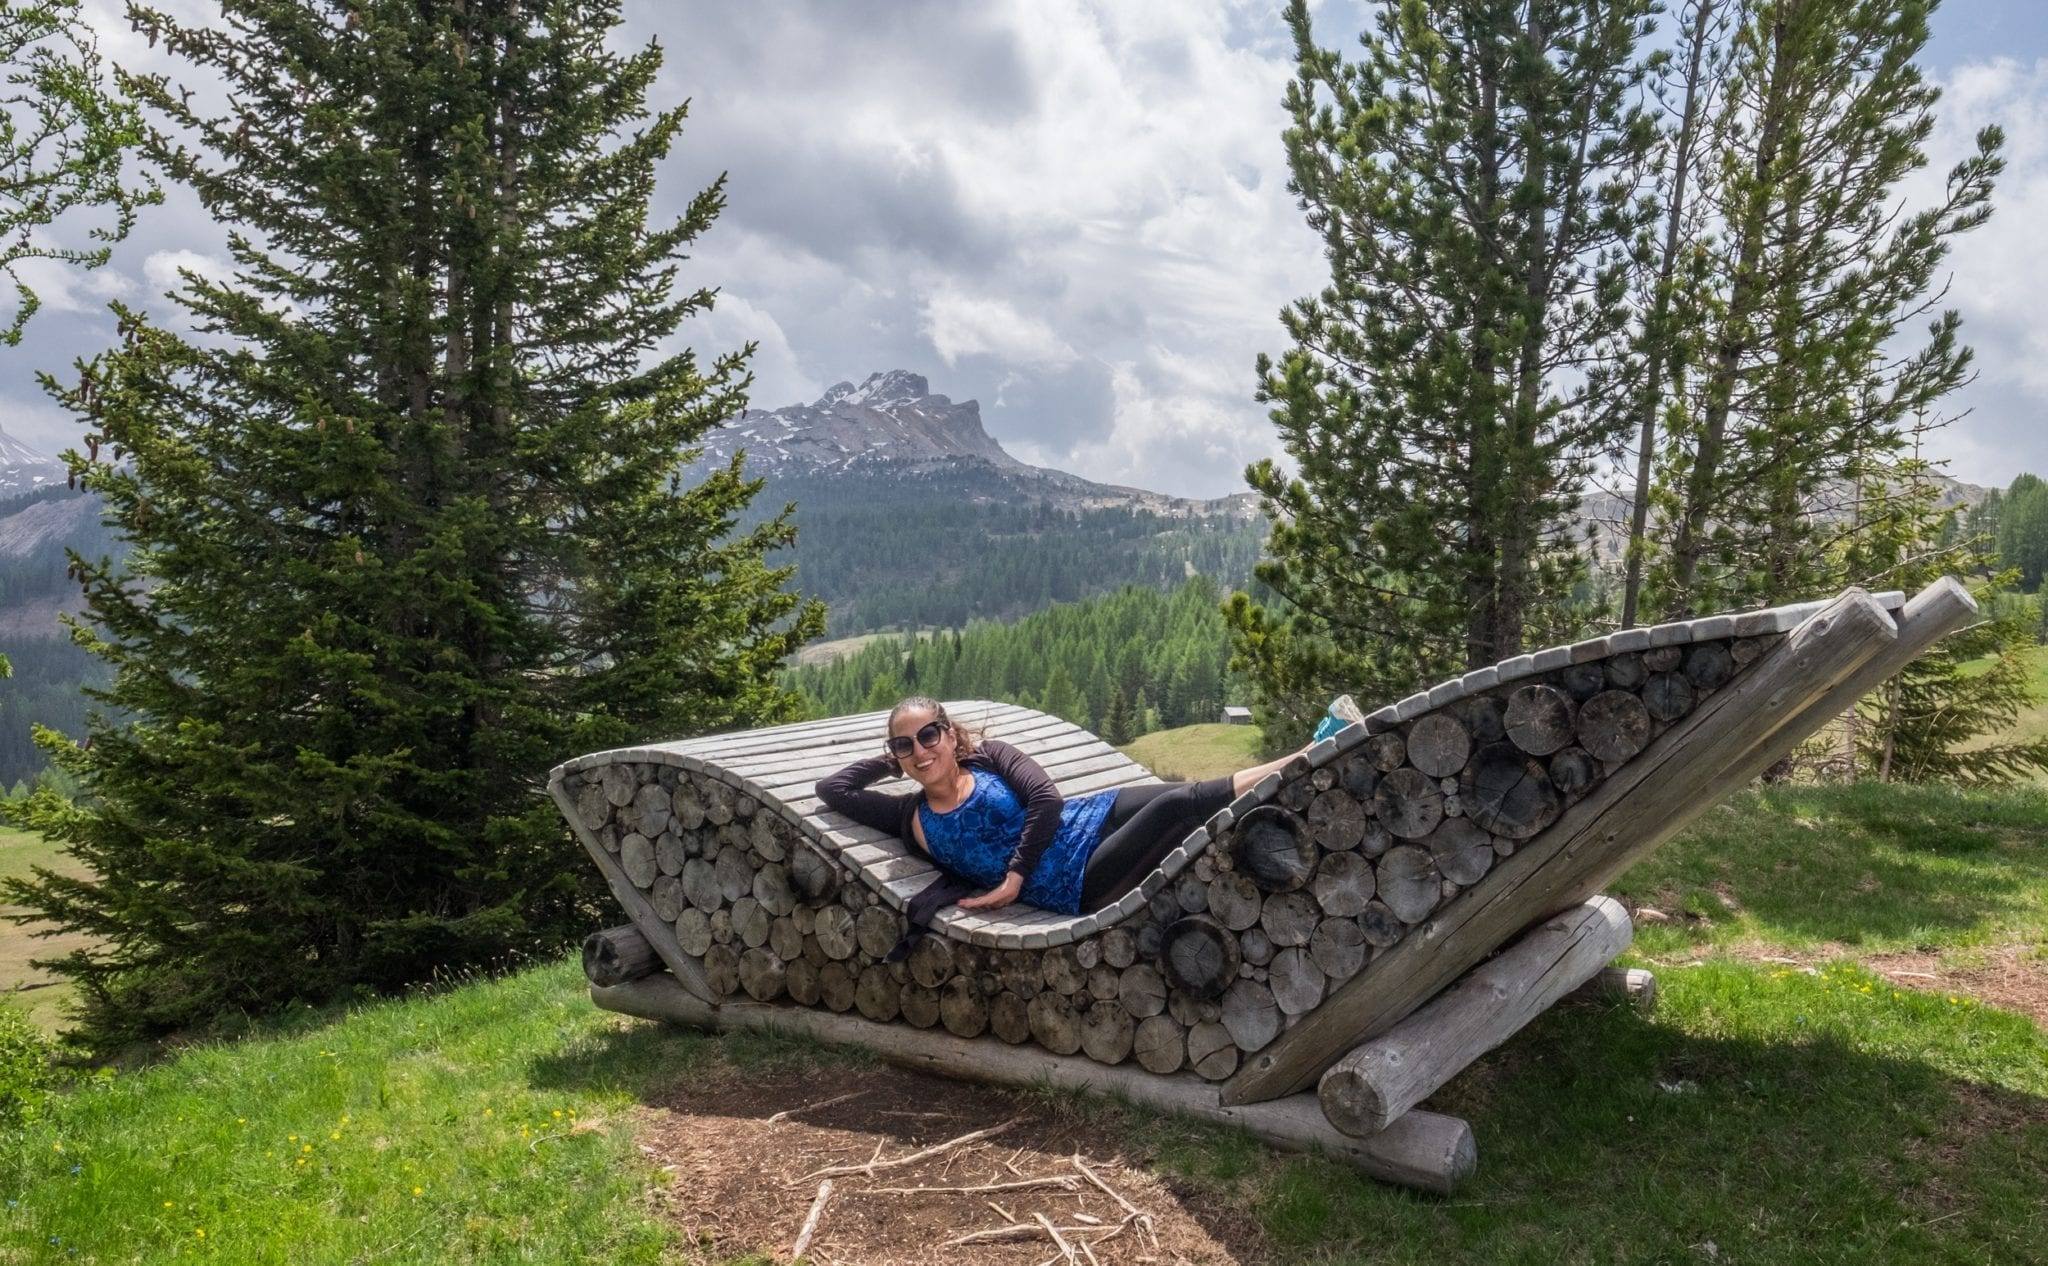 Kate stretches out on a sun lounger in the Dolomites -- it looks like a large chair, and the bottom is made of stacked wood. Trees and a Mountain View are in the distance.